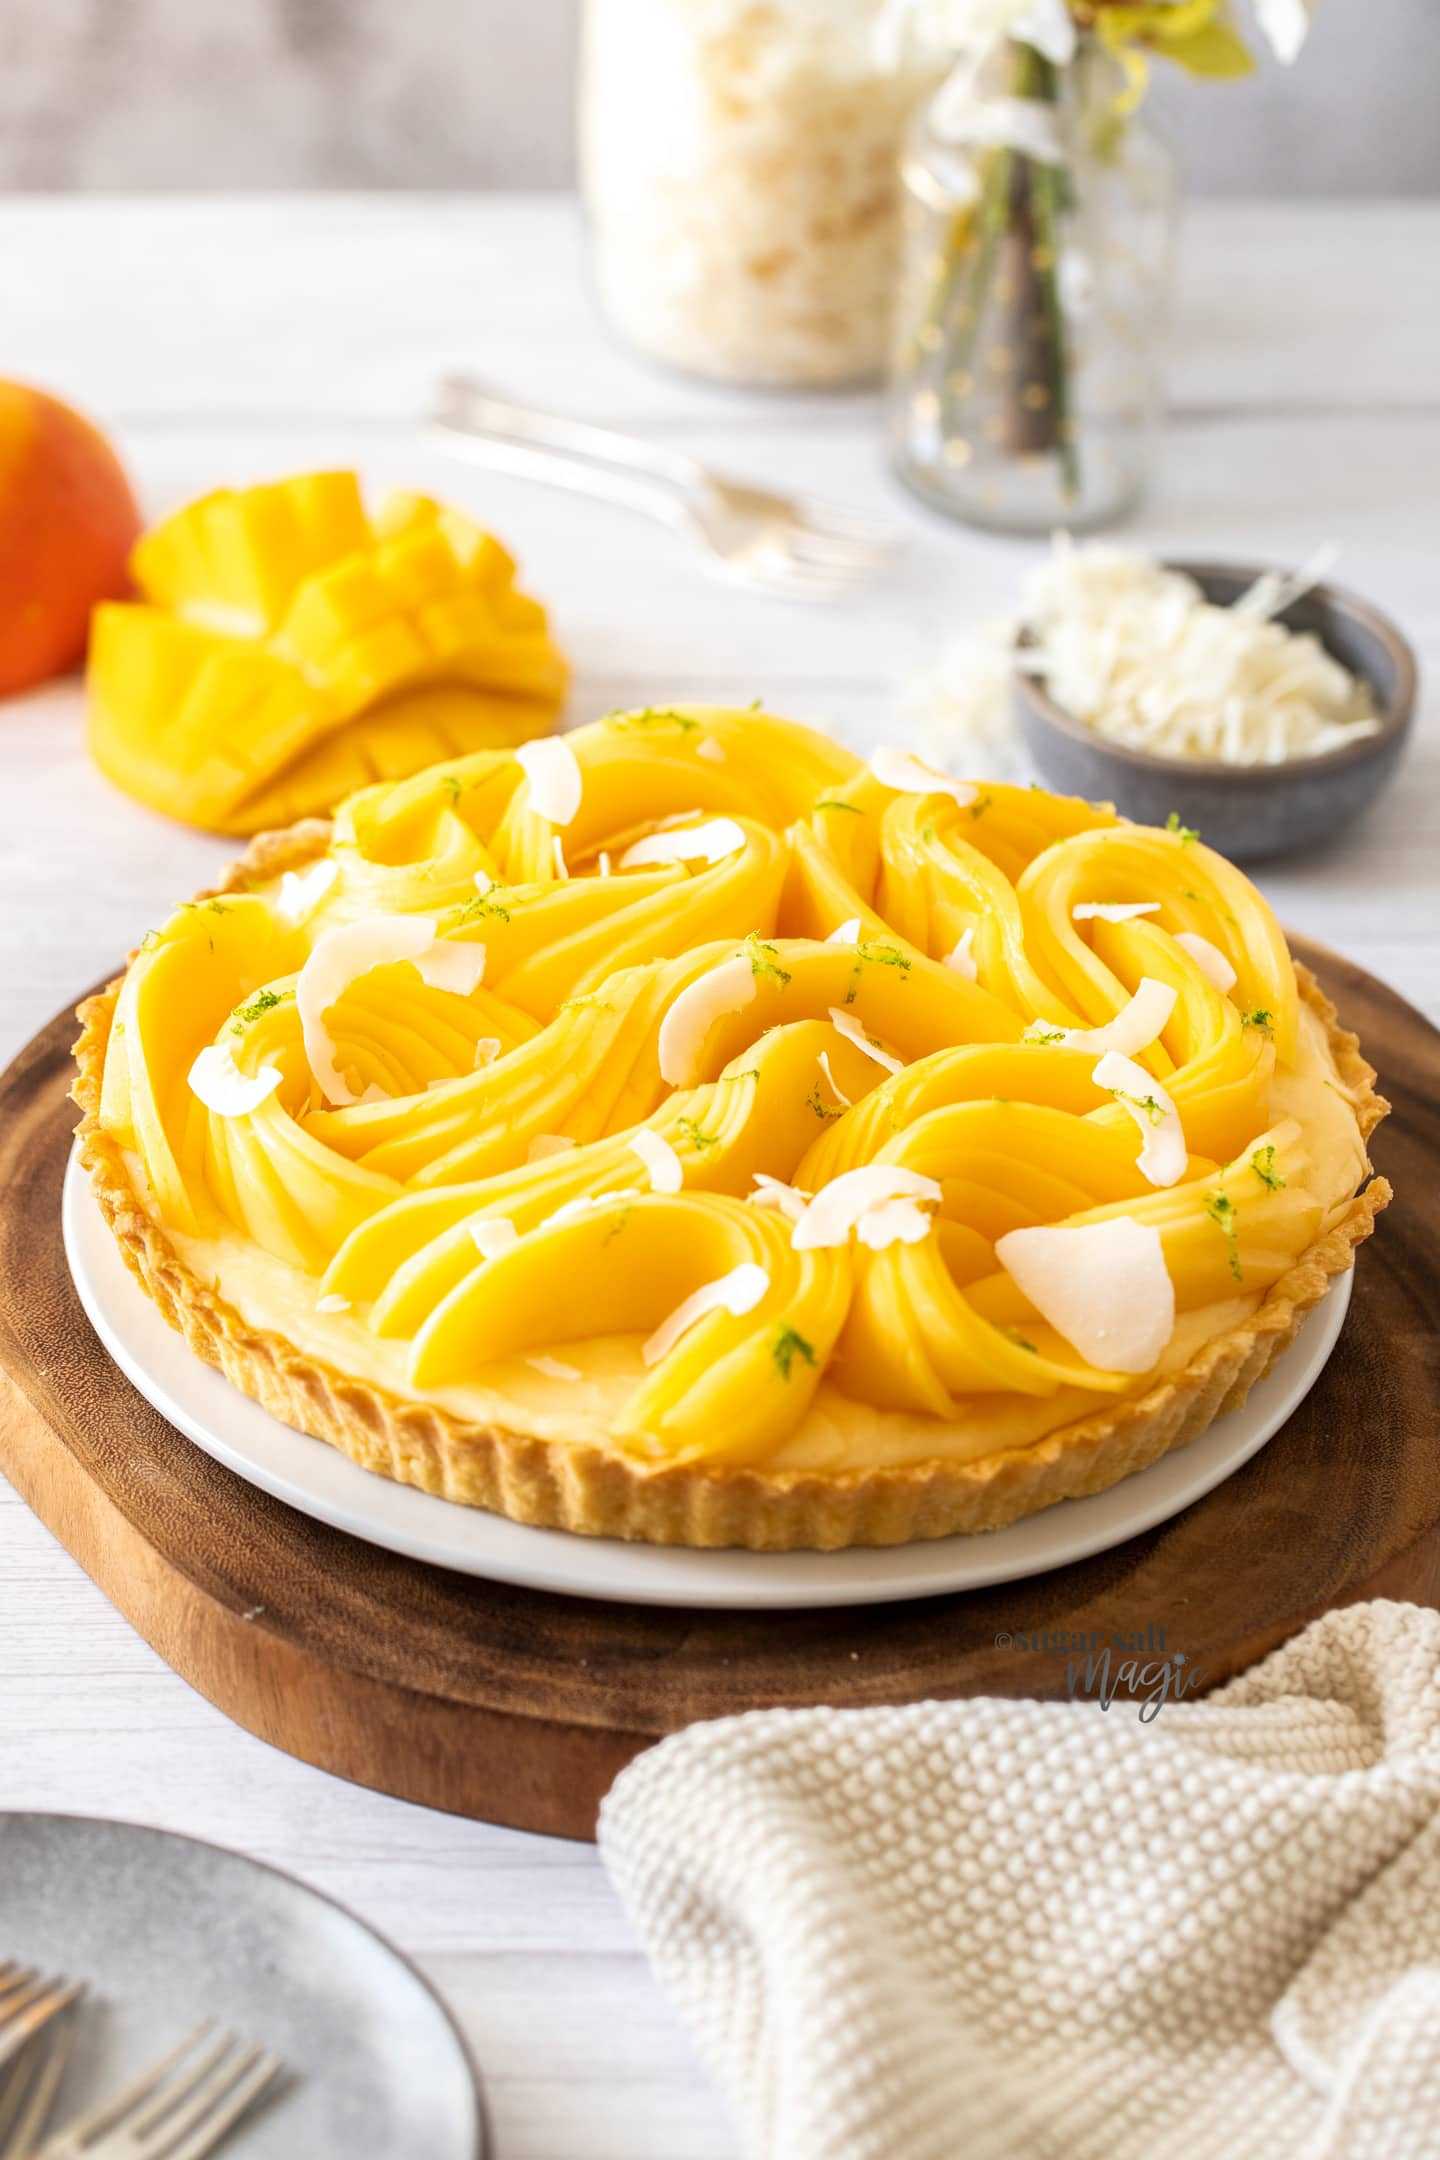 A tart topped with slices of mango on a wooden board